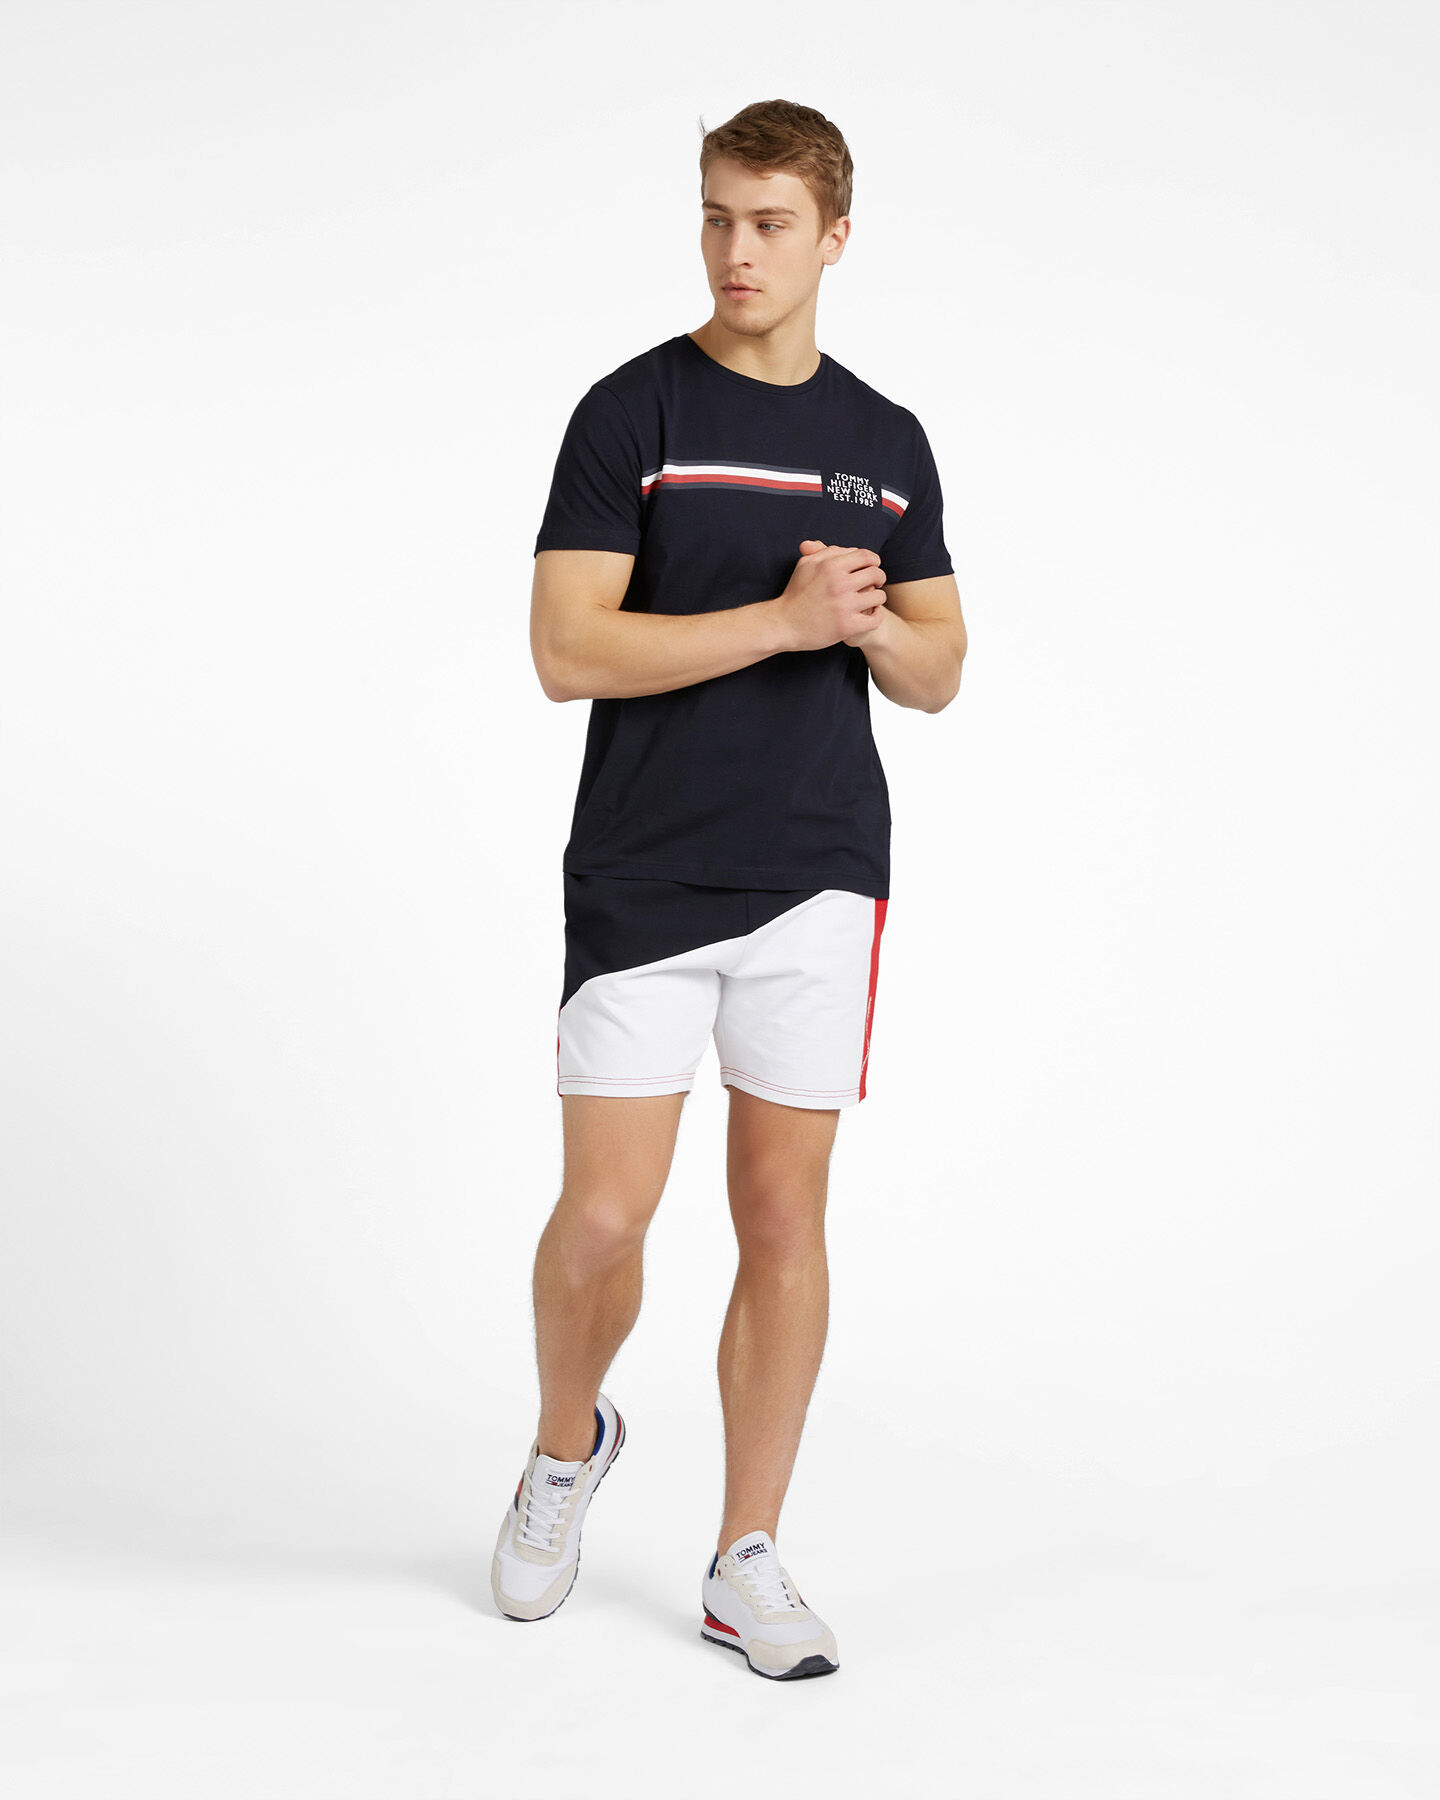 T-Shirt TOMMY HILFIGER CORP SPLIT M S4089501 scatto 1